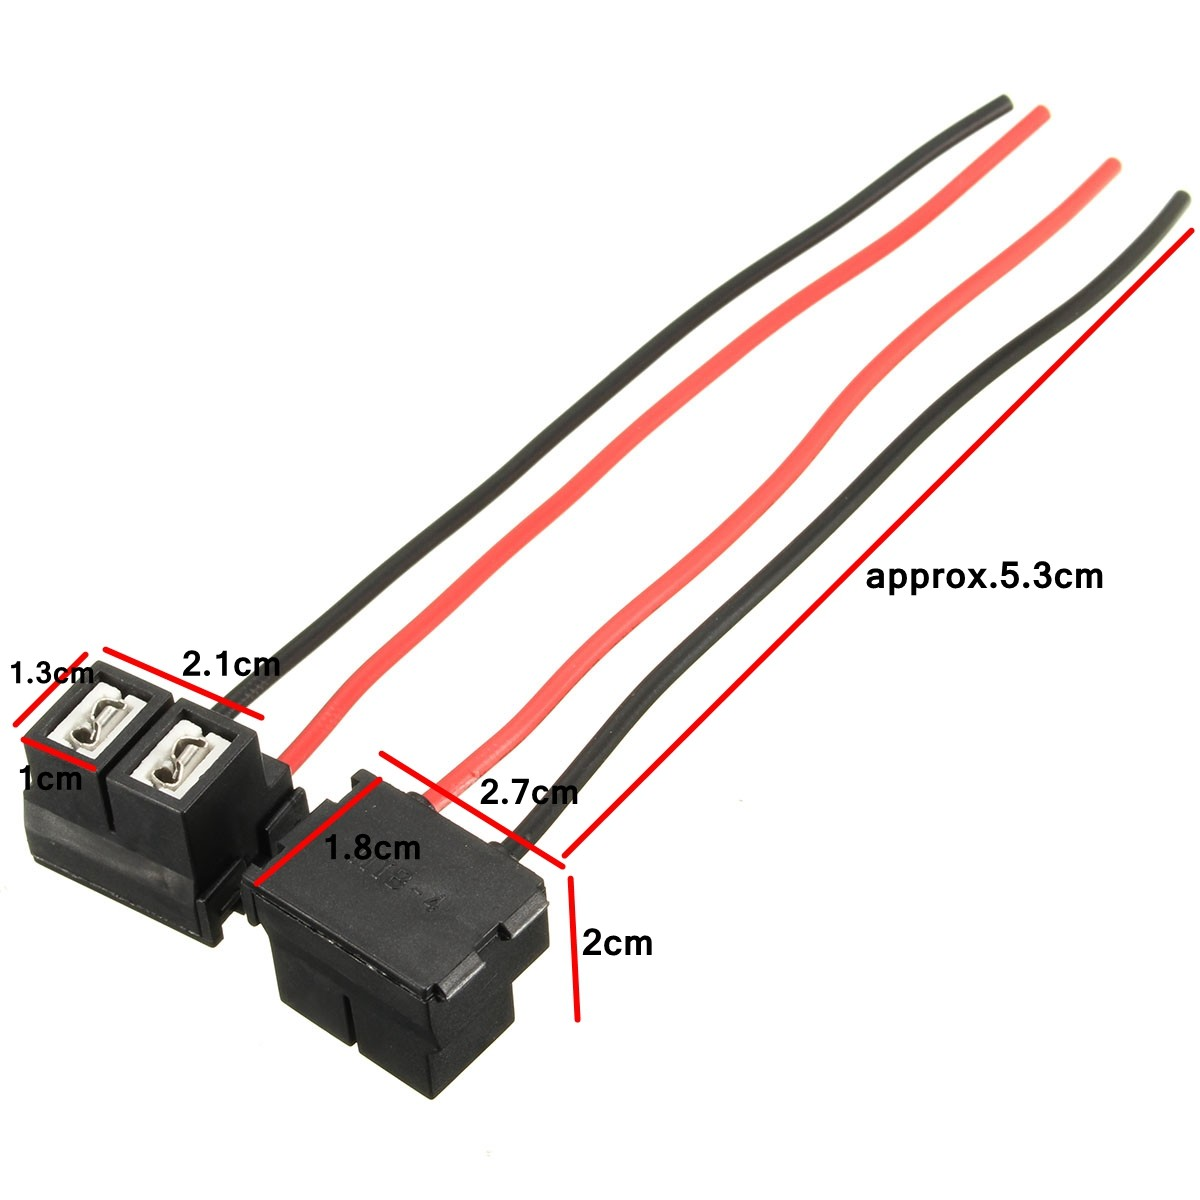 H7 Headlight Wiring Electrical Diagram Wire Harness 2x 2 Pins Repair Bulb Holder Connector Plug Socket